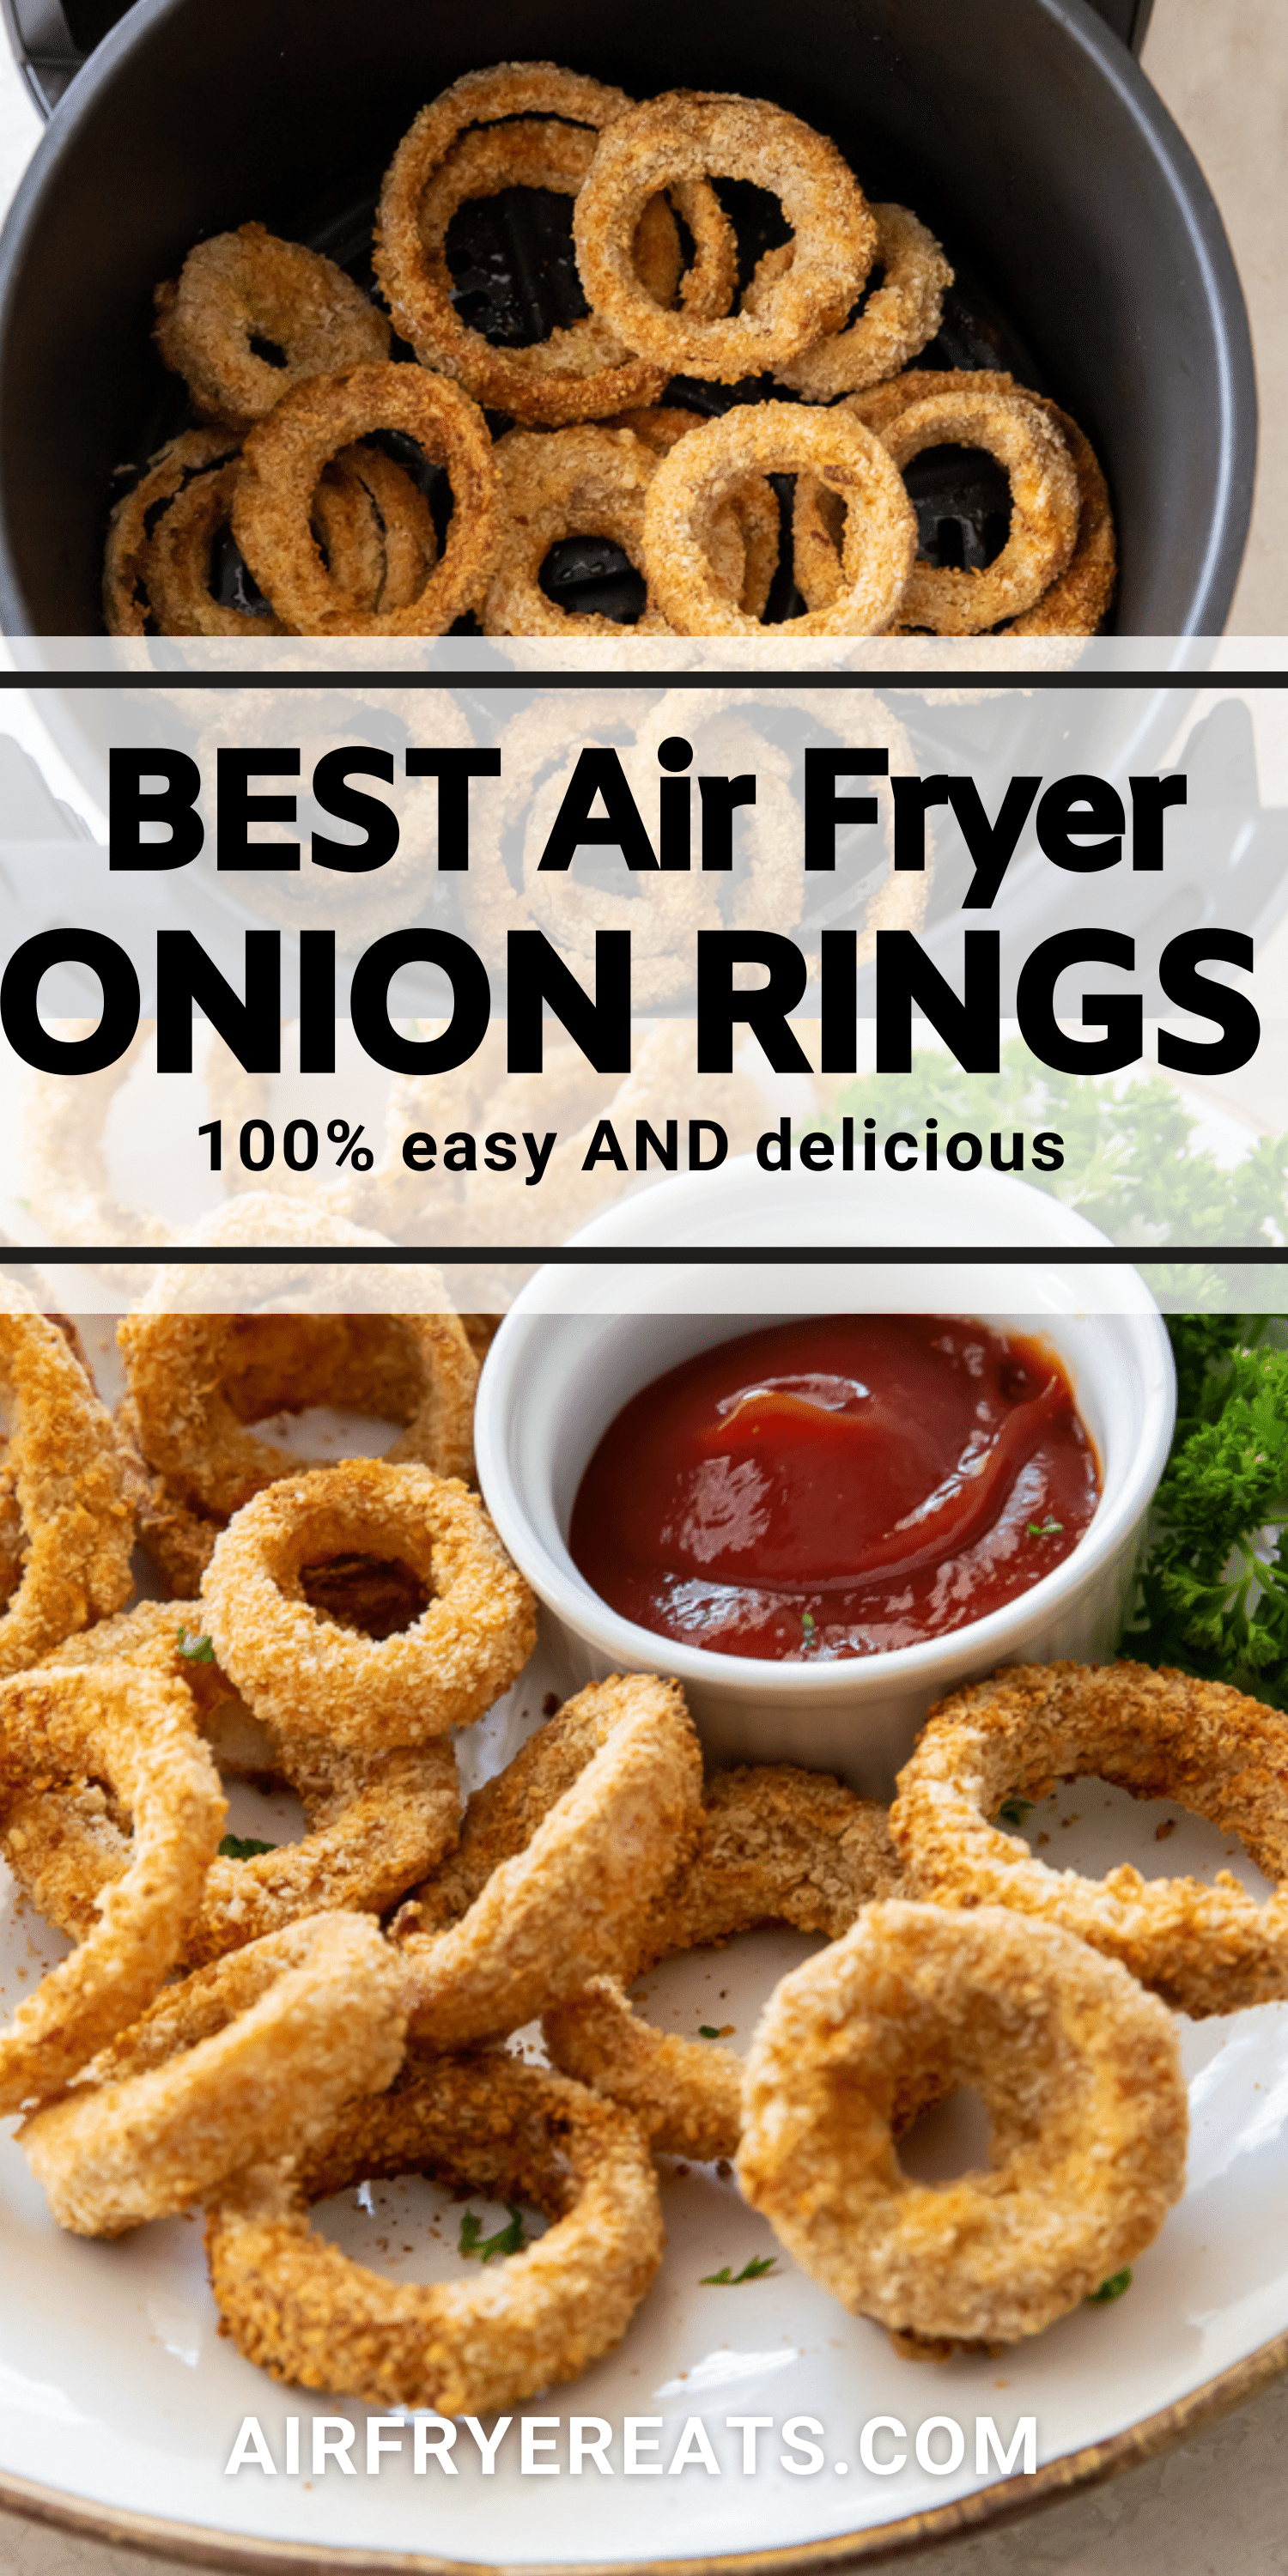 two images of air fryer onion rings, with a text overlay in the center that says Best air fryer onion rings